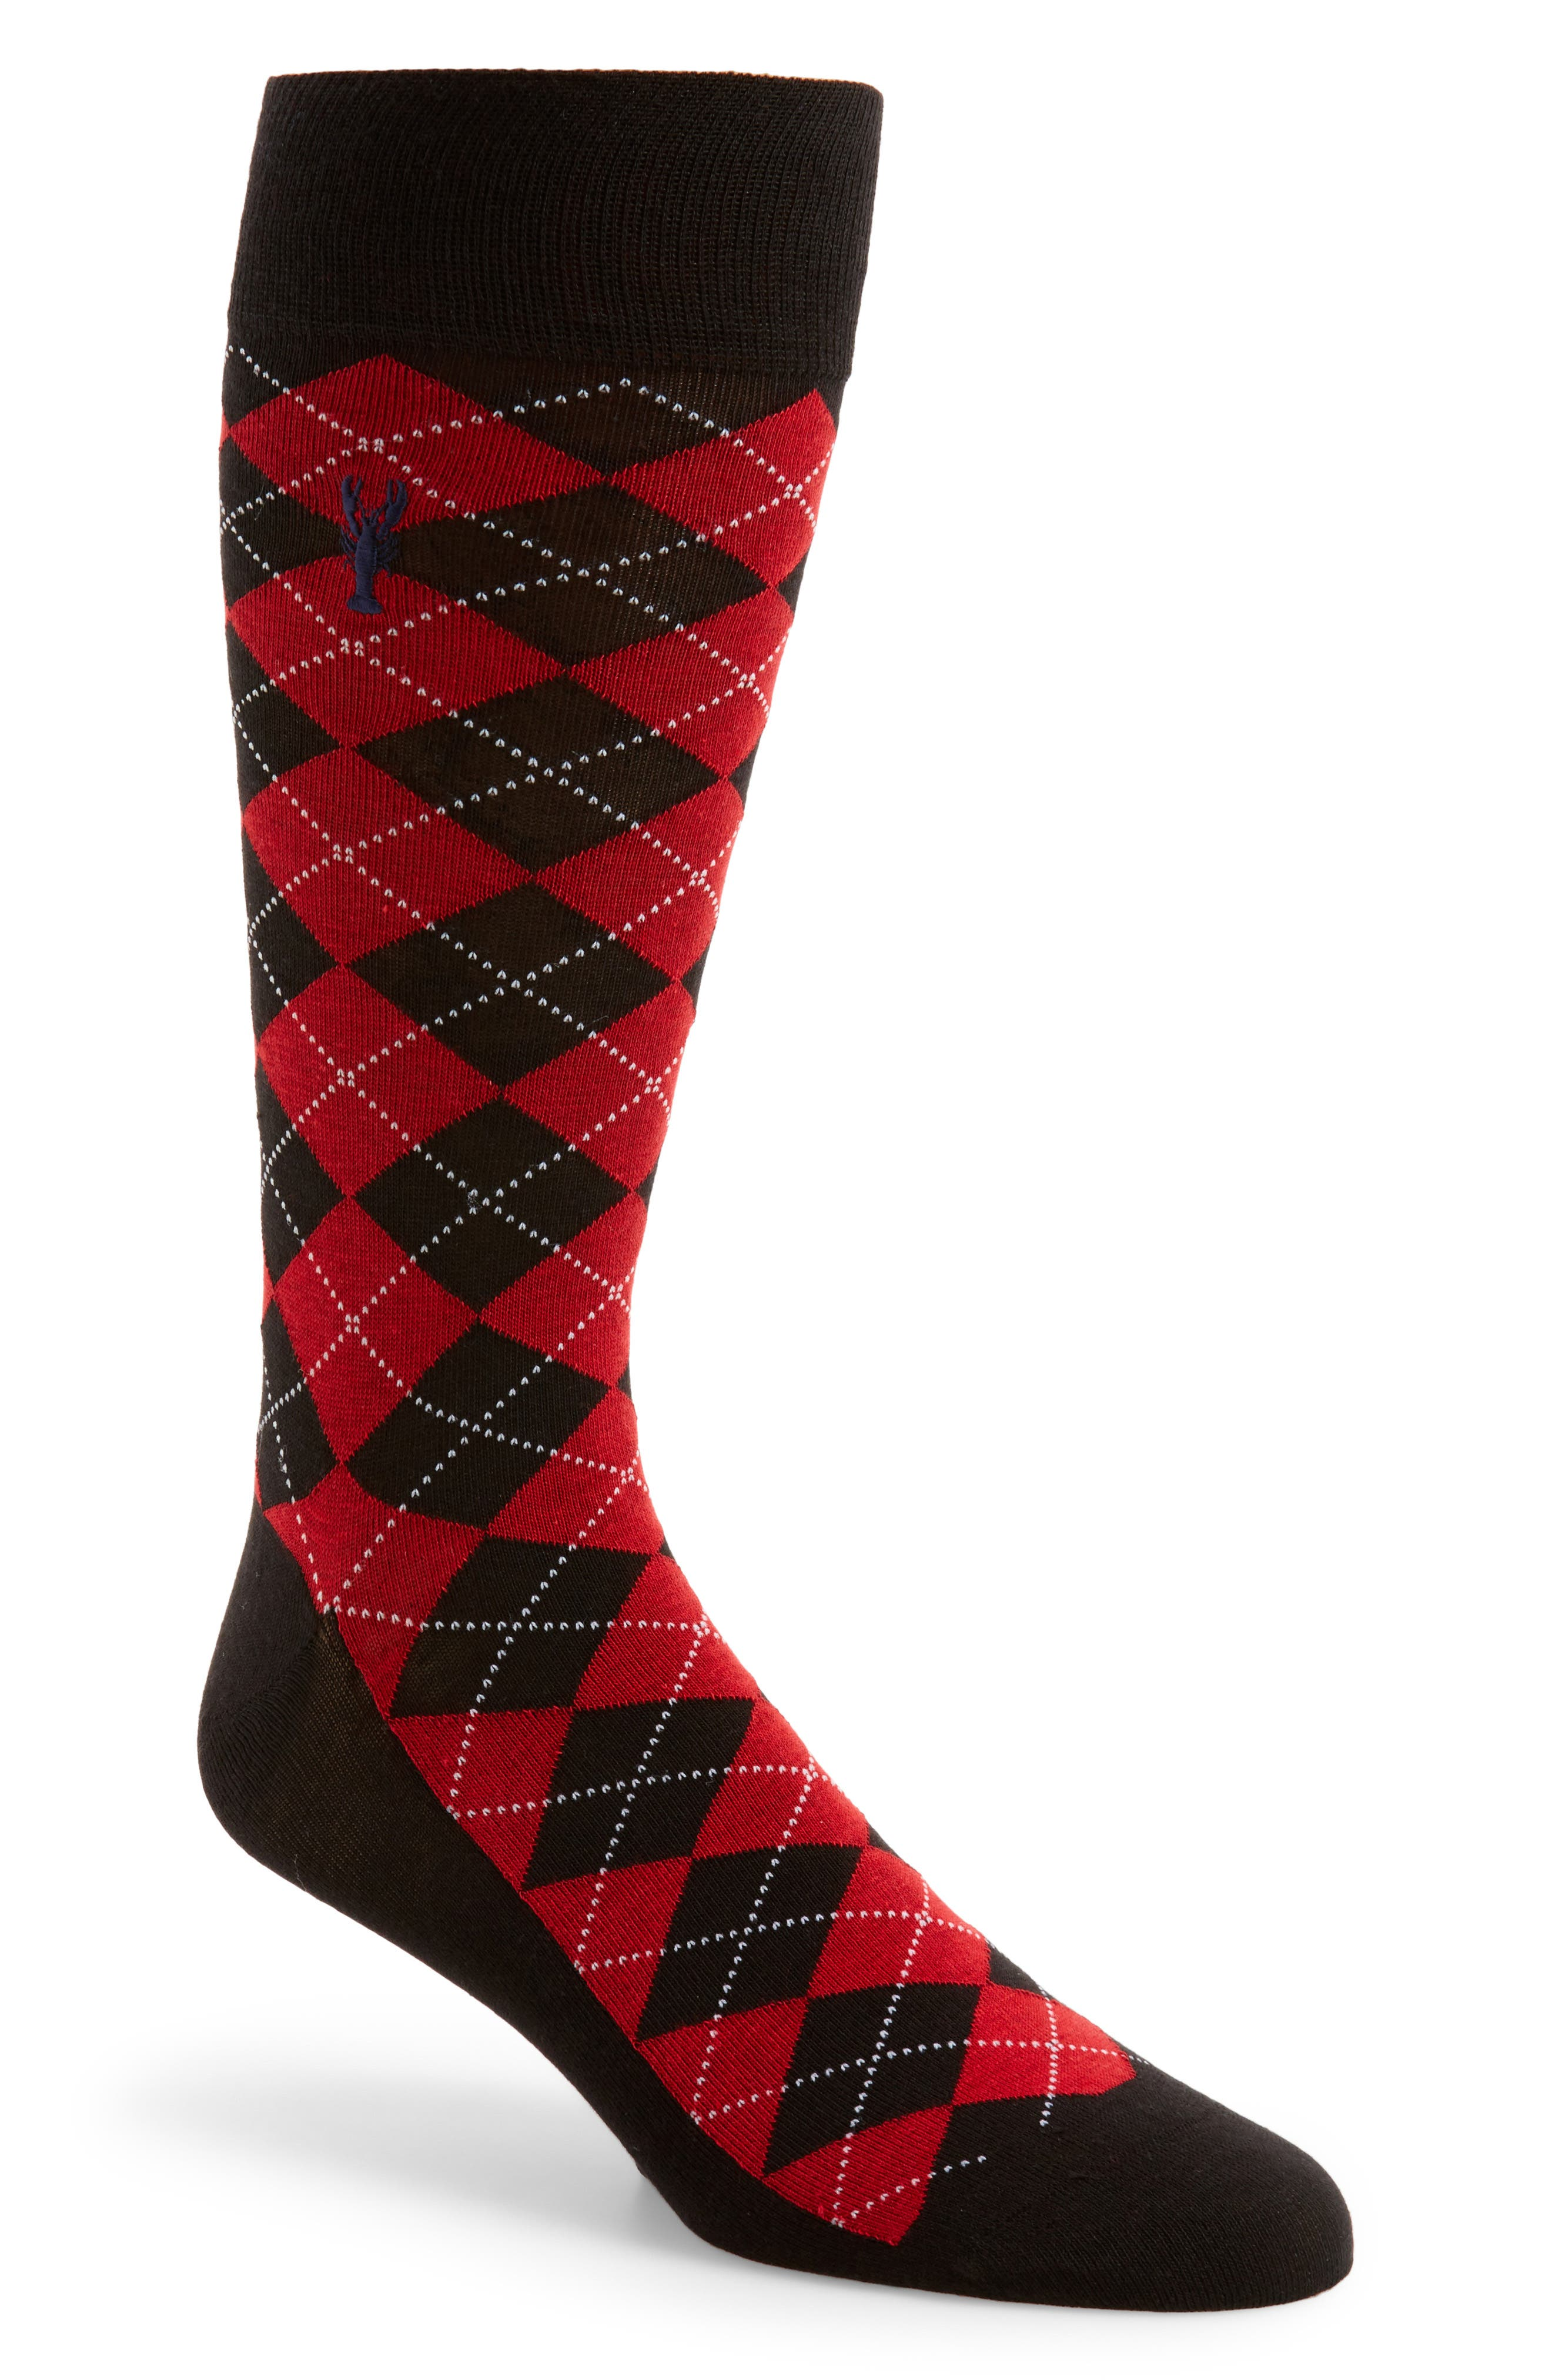 Main Image - Cole Haan Pinch Argyle Socks (3 for $30)